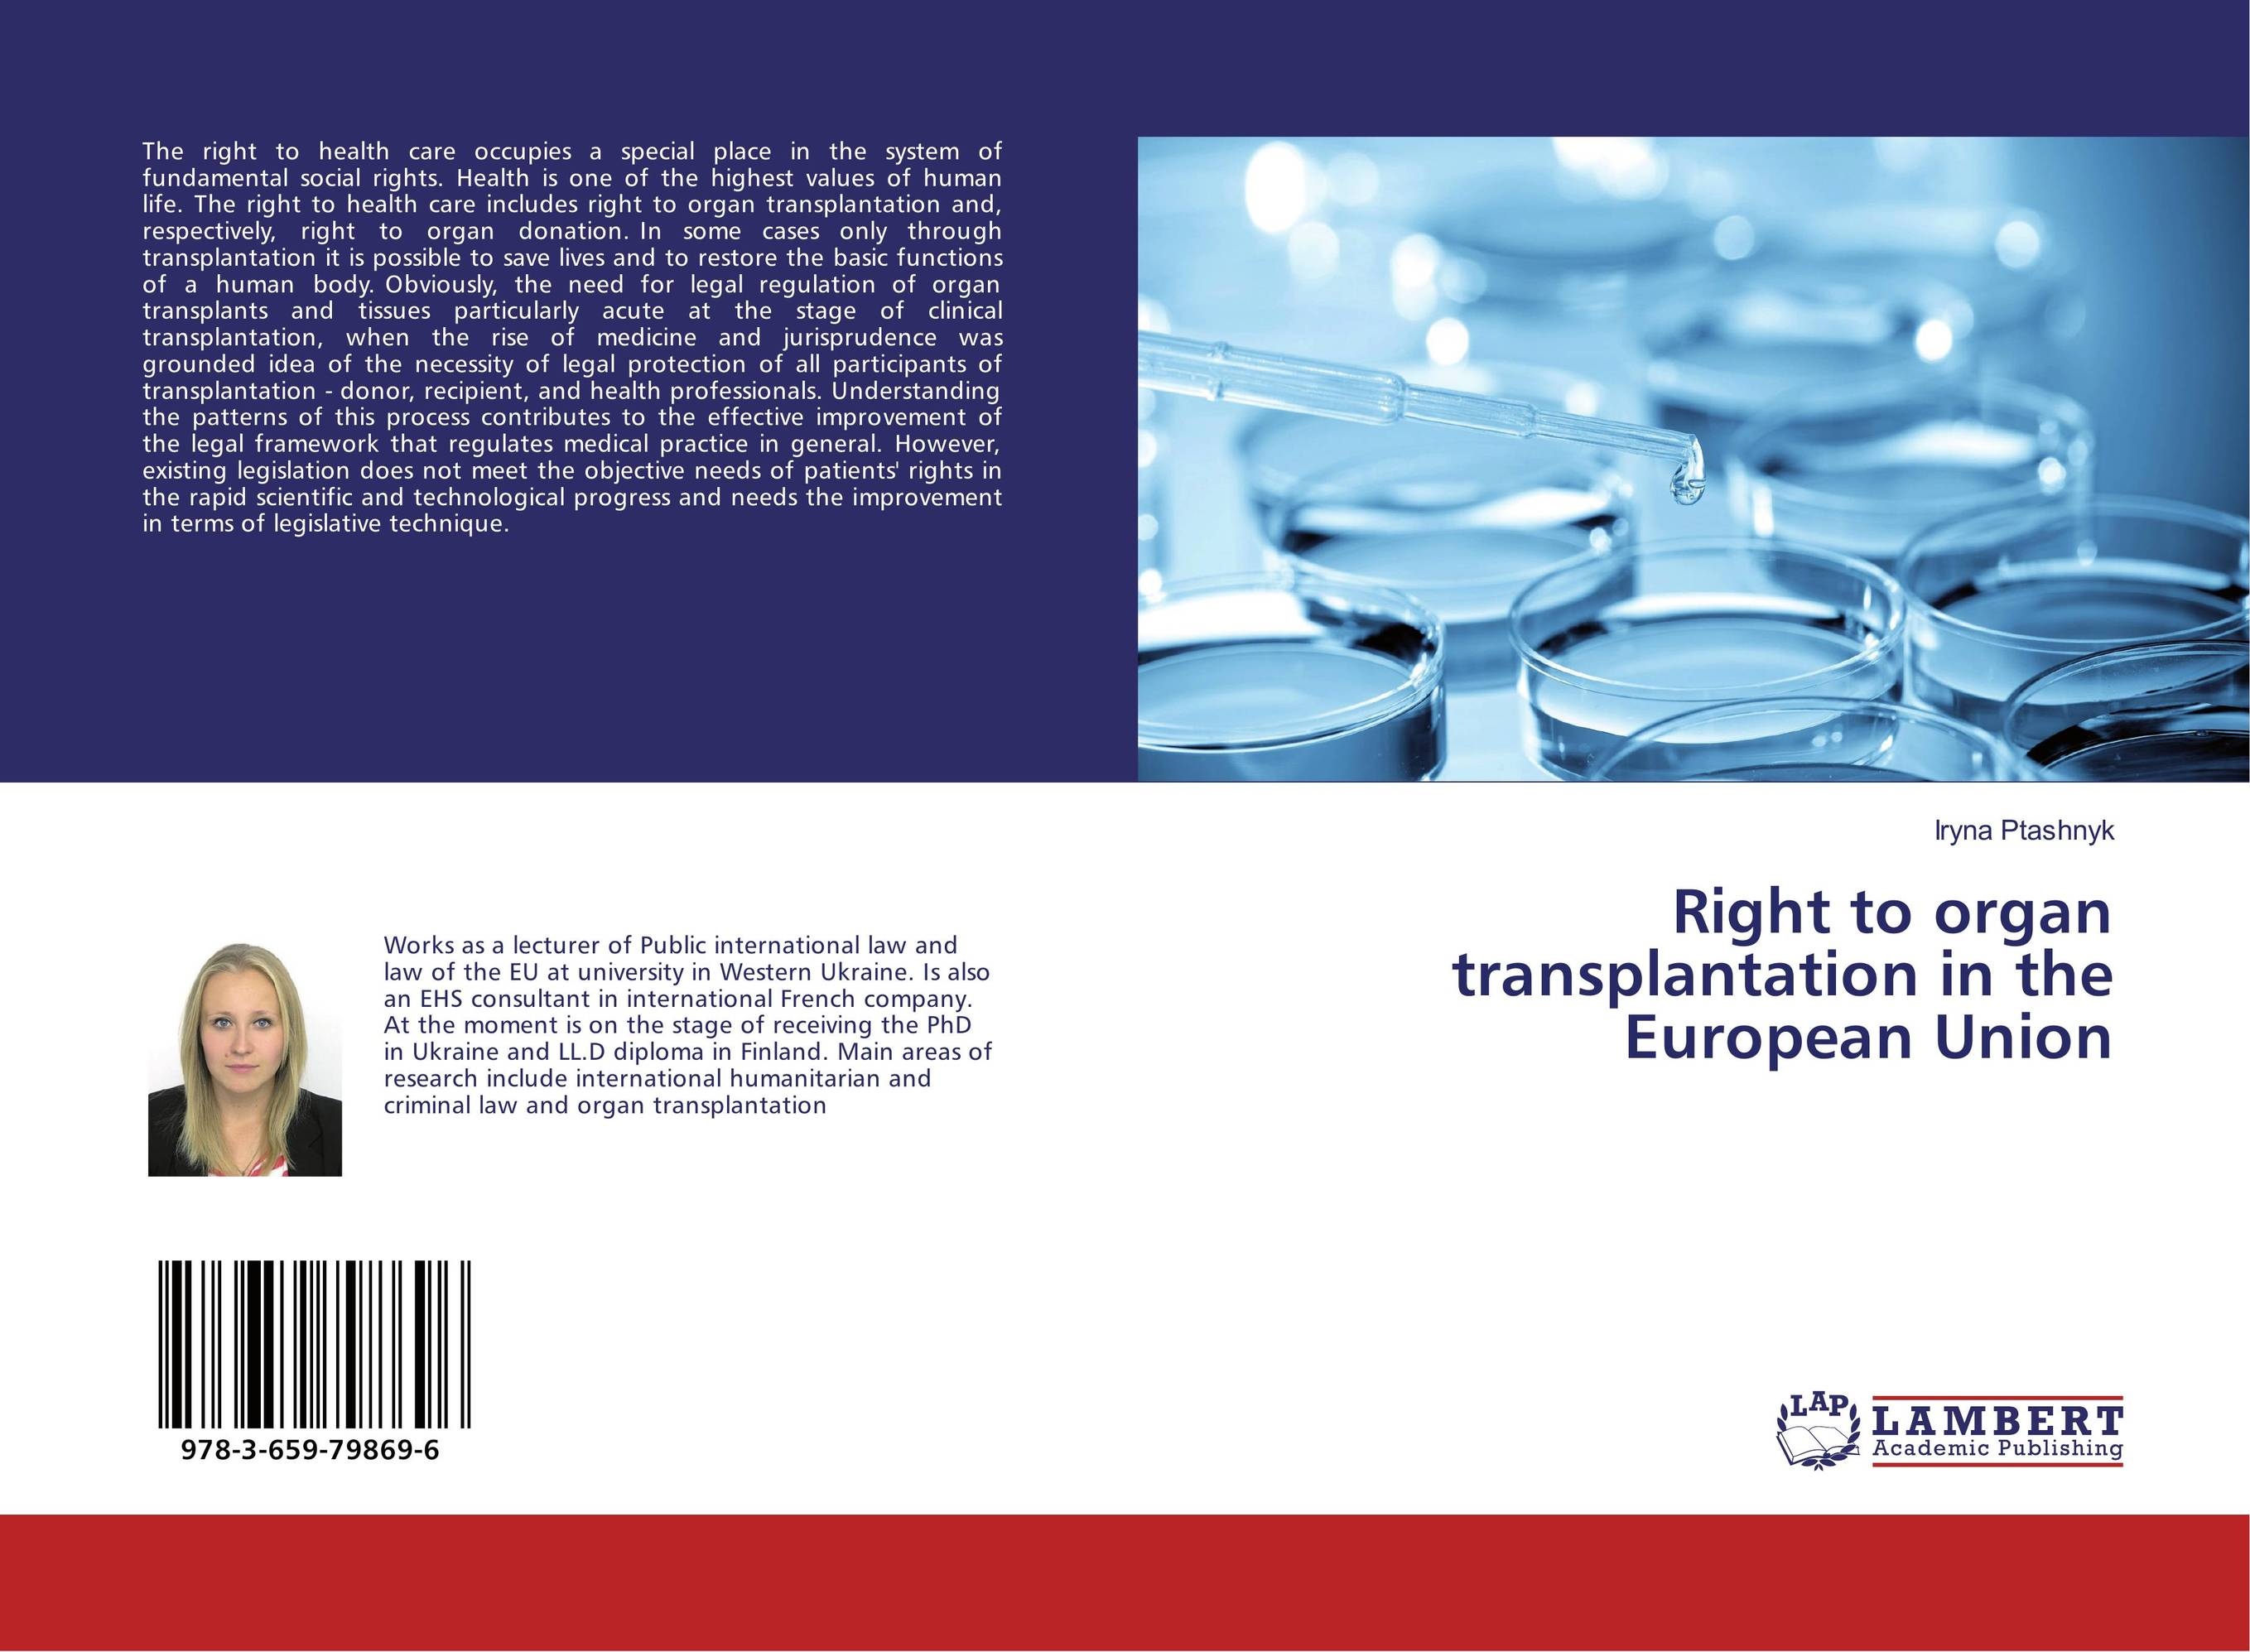 Right to organ transplantation in the European Union transplantation